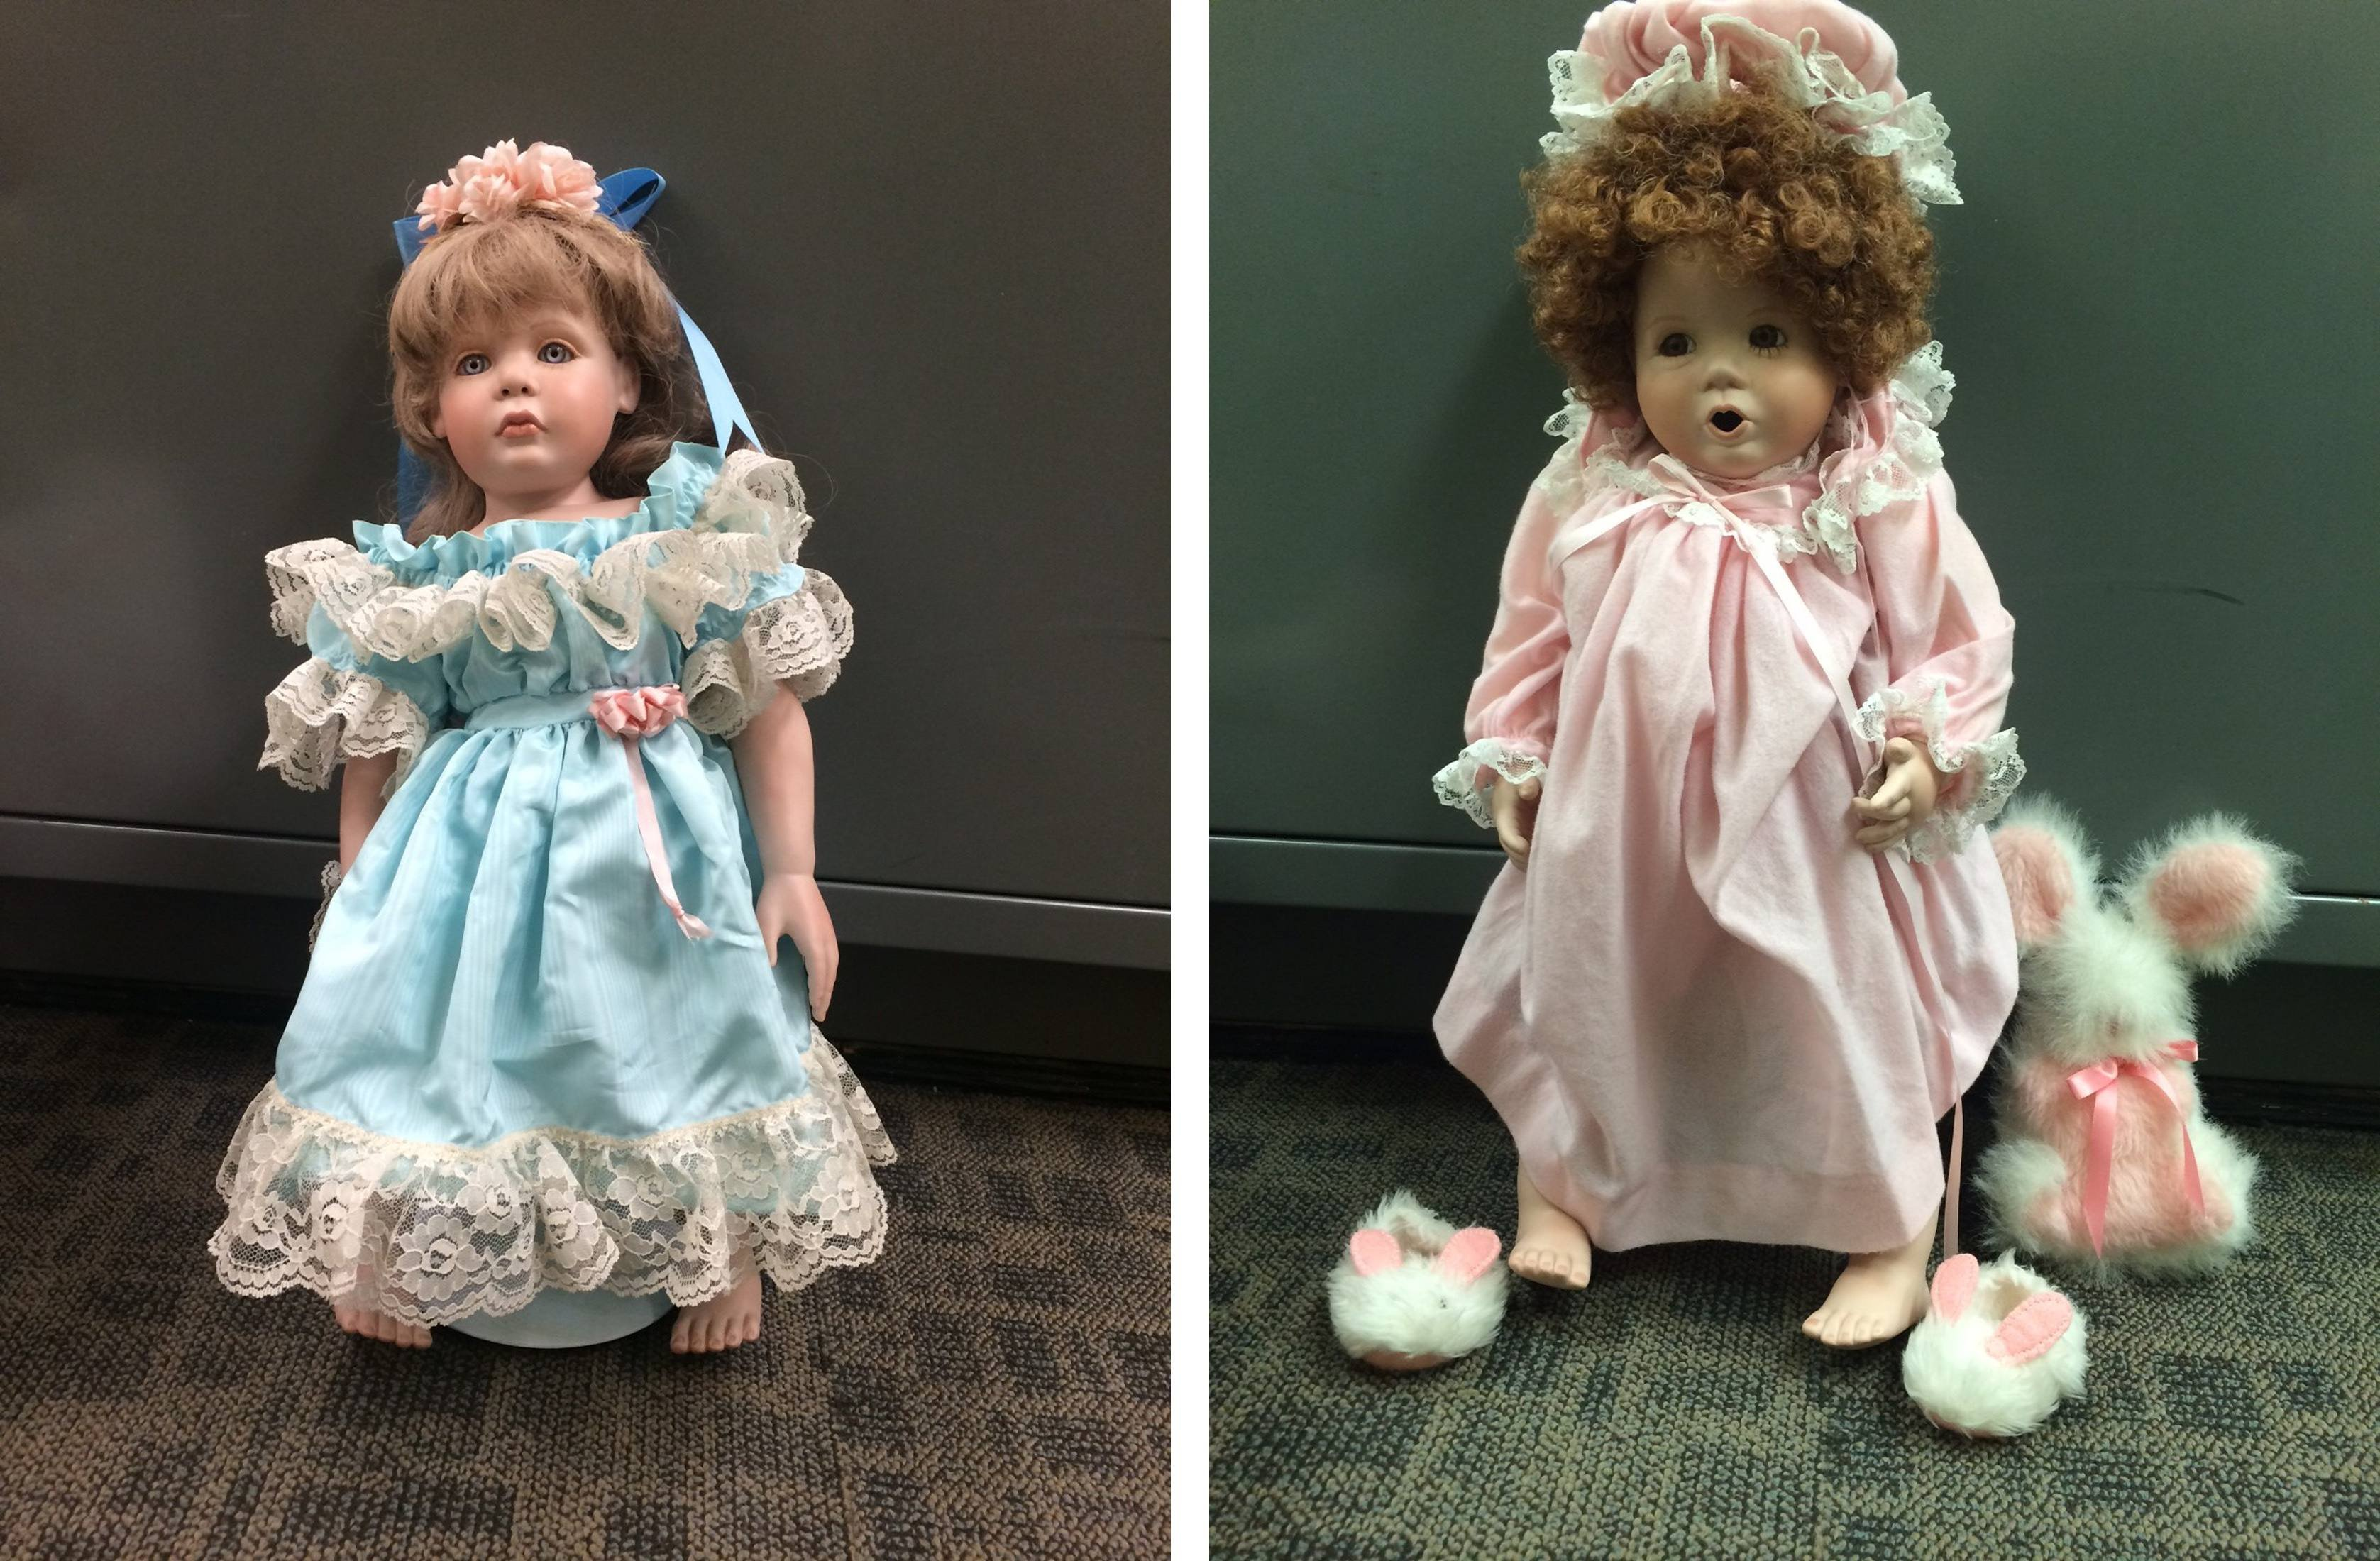 A combination photo showing two of the porcelain dolls found on doorsteps of numerous residences in the Talega community of San Clemente, Calif., July 24, 2014.